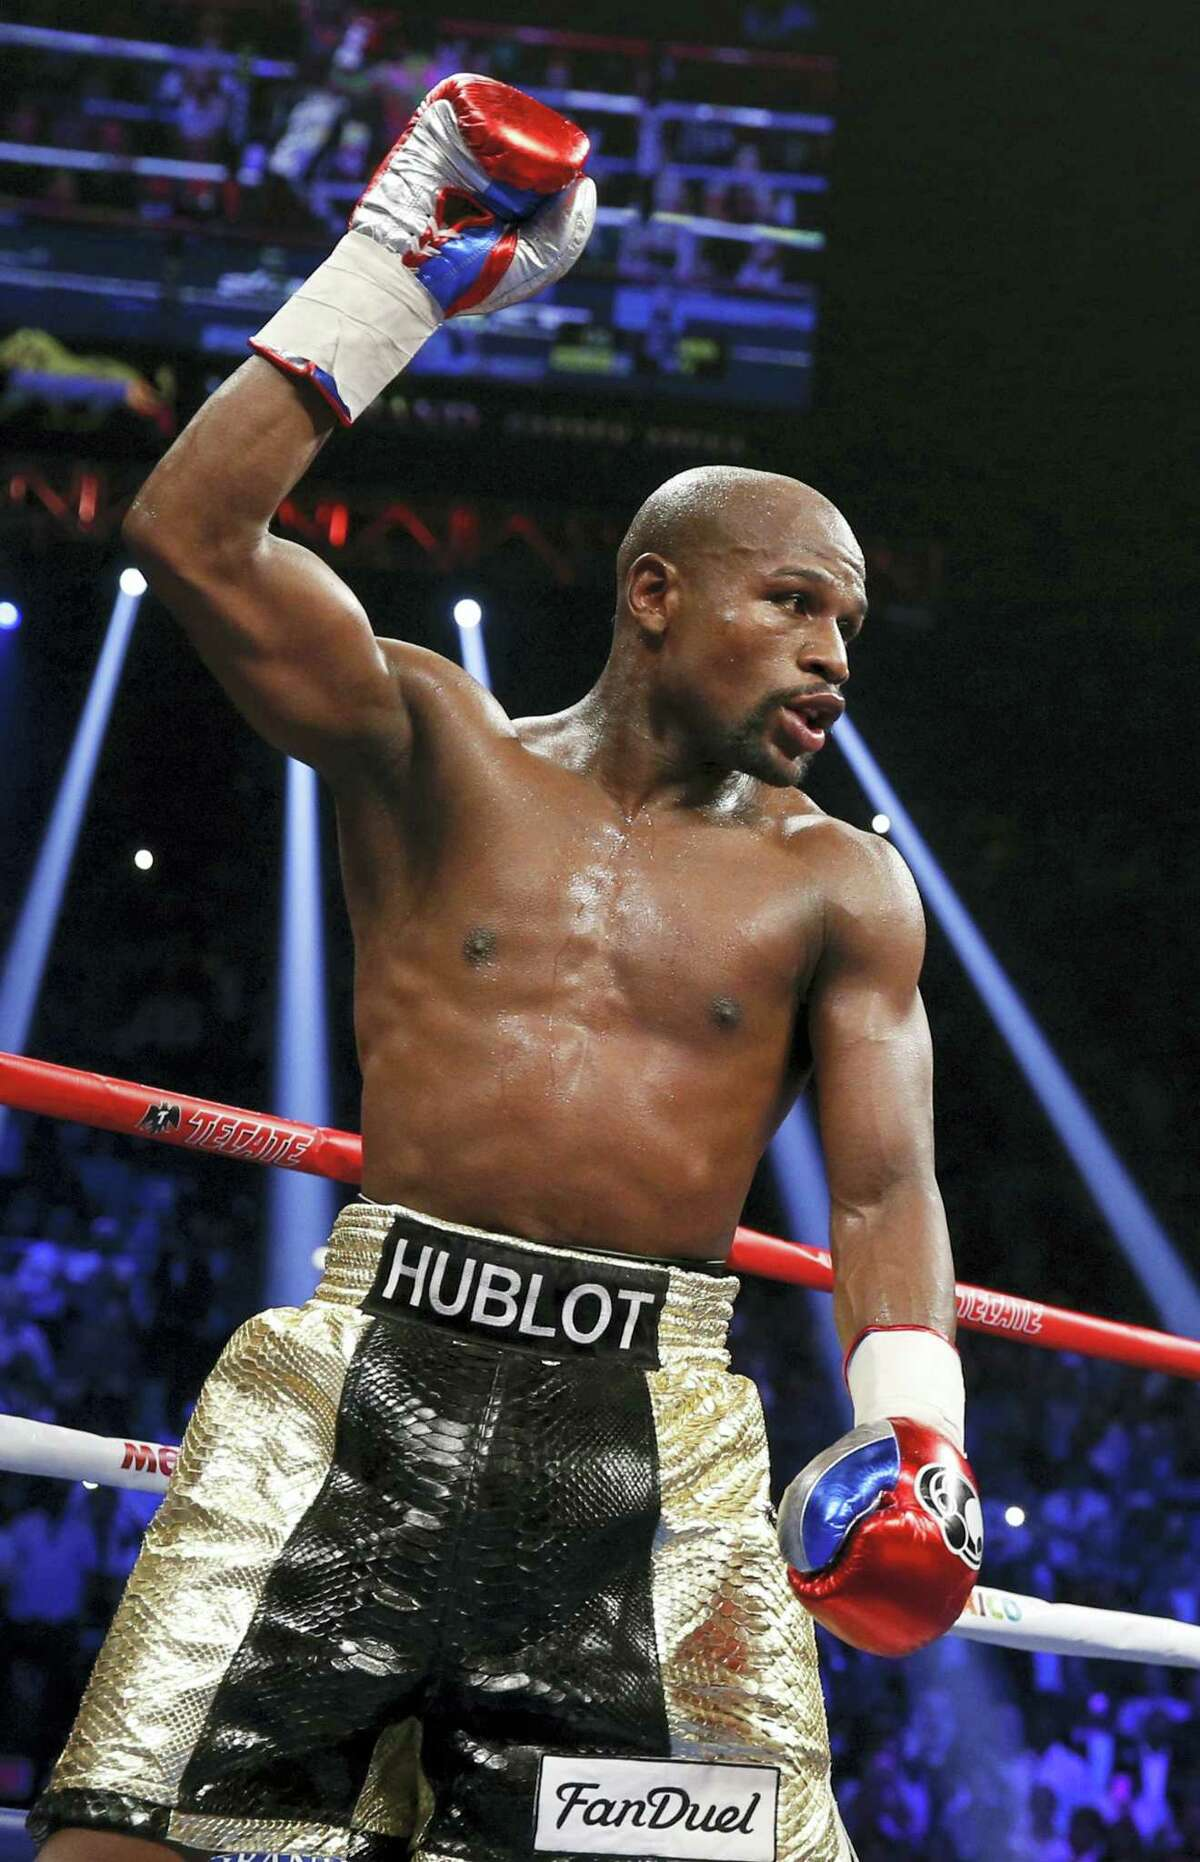 In this May 2, 2015 photo, Floyd Mayweather Jr. celebrates during his welterweight title fight against Manny Pacquiao, in Las Vegas. Conor McGregor has come to an agreement with UFC that has moved a proposed fight with Floyd Mayweather Jr. closer to reality.